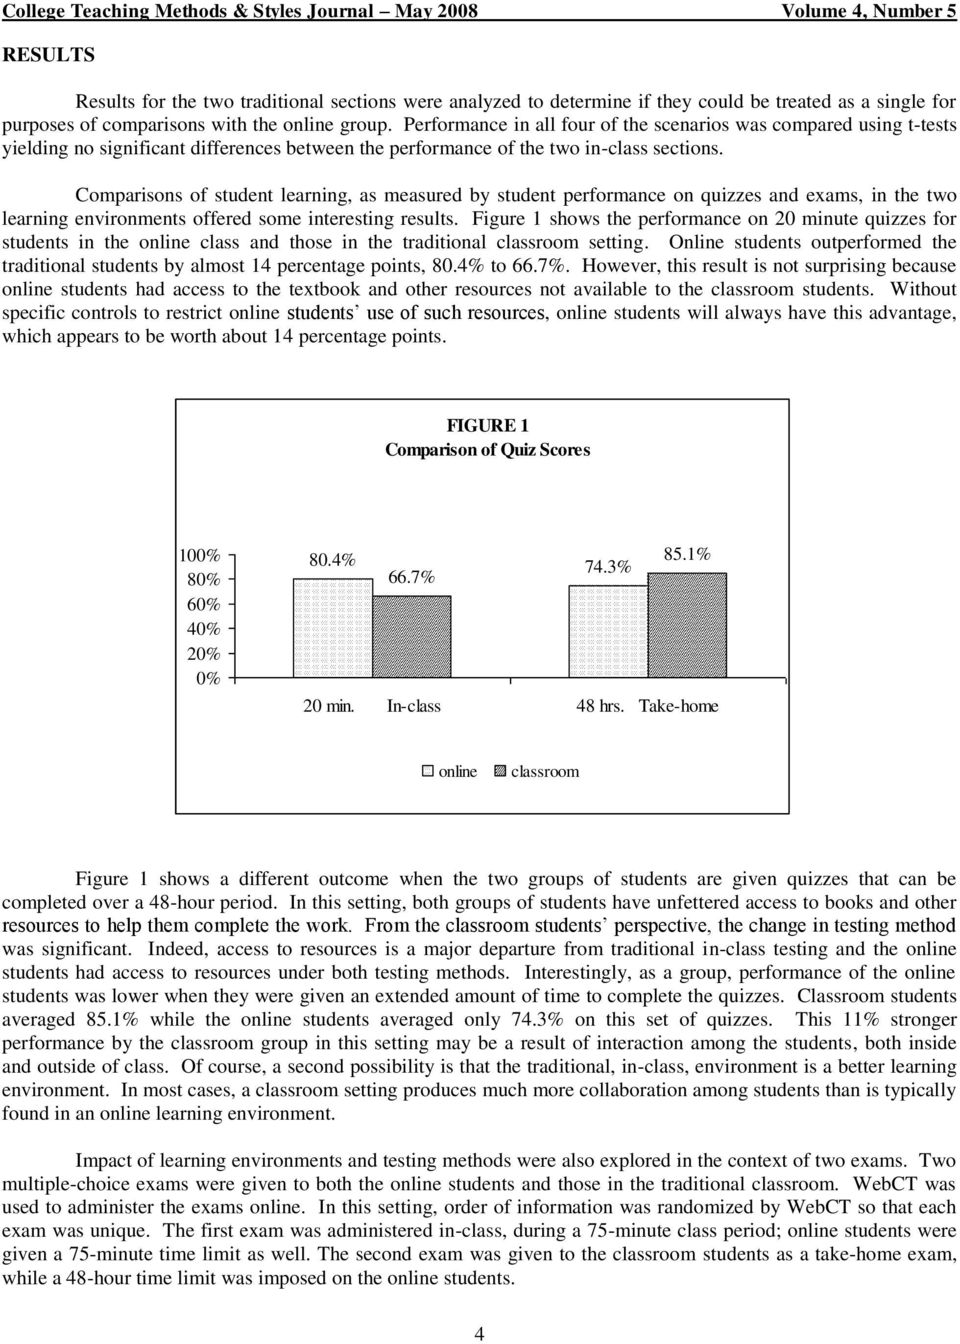 The impact of teaching method on accademic performance of college students